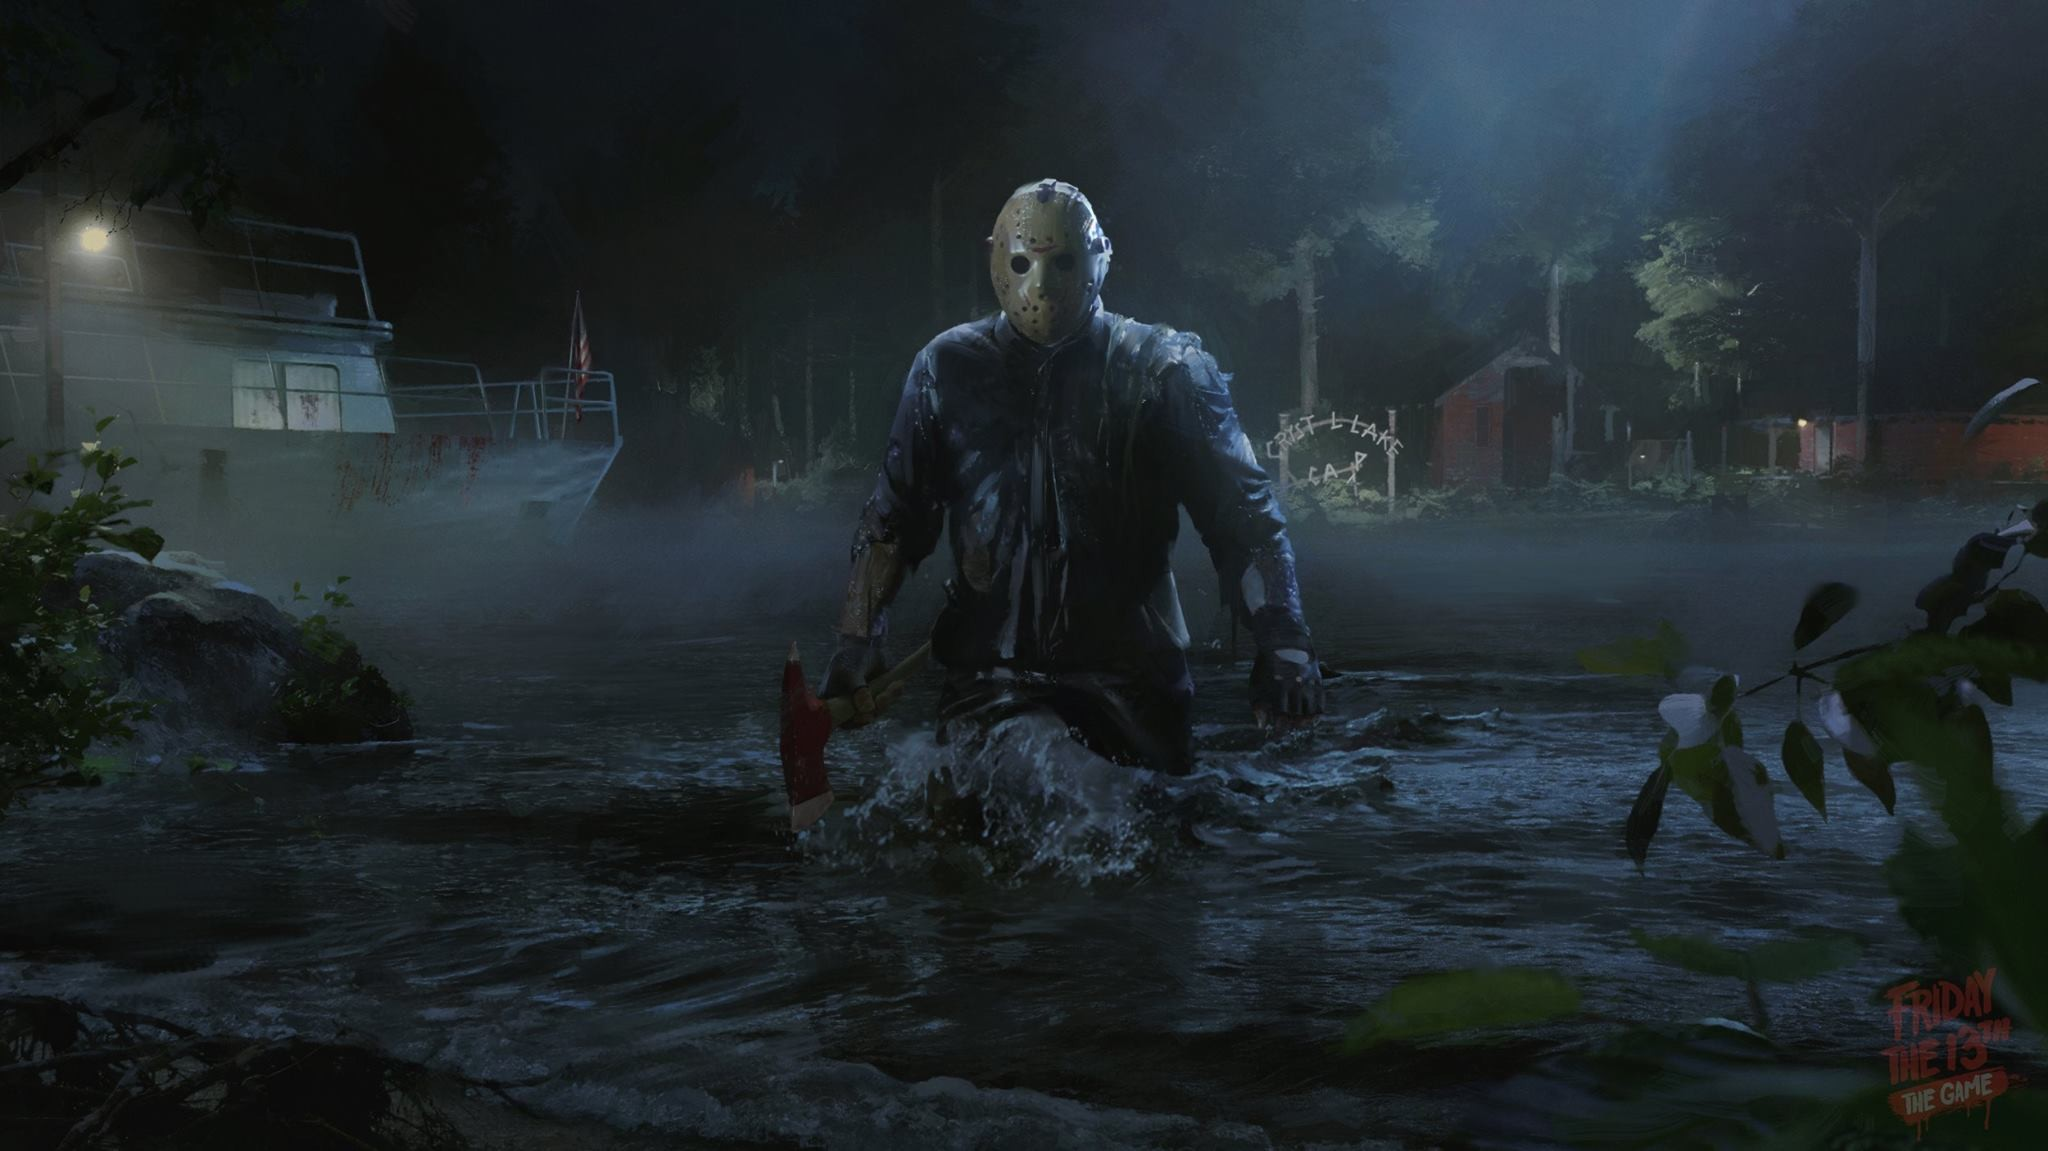 2048x1151 Video Game - Friday the 13th: The Game Wallpaper